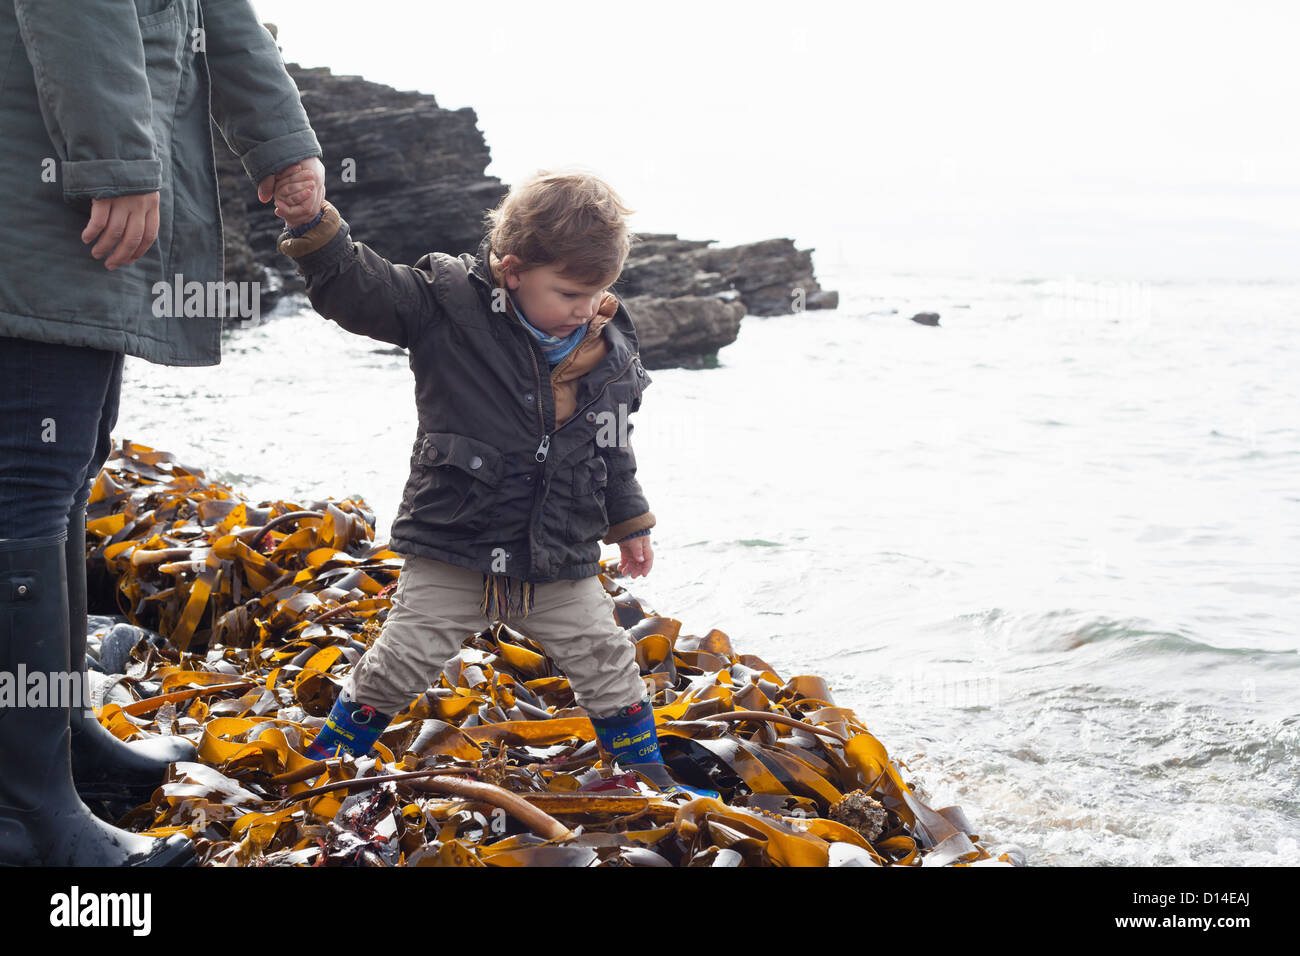 Father and son playing in kelp on beach - Stock Image